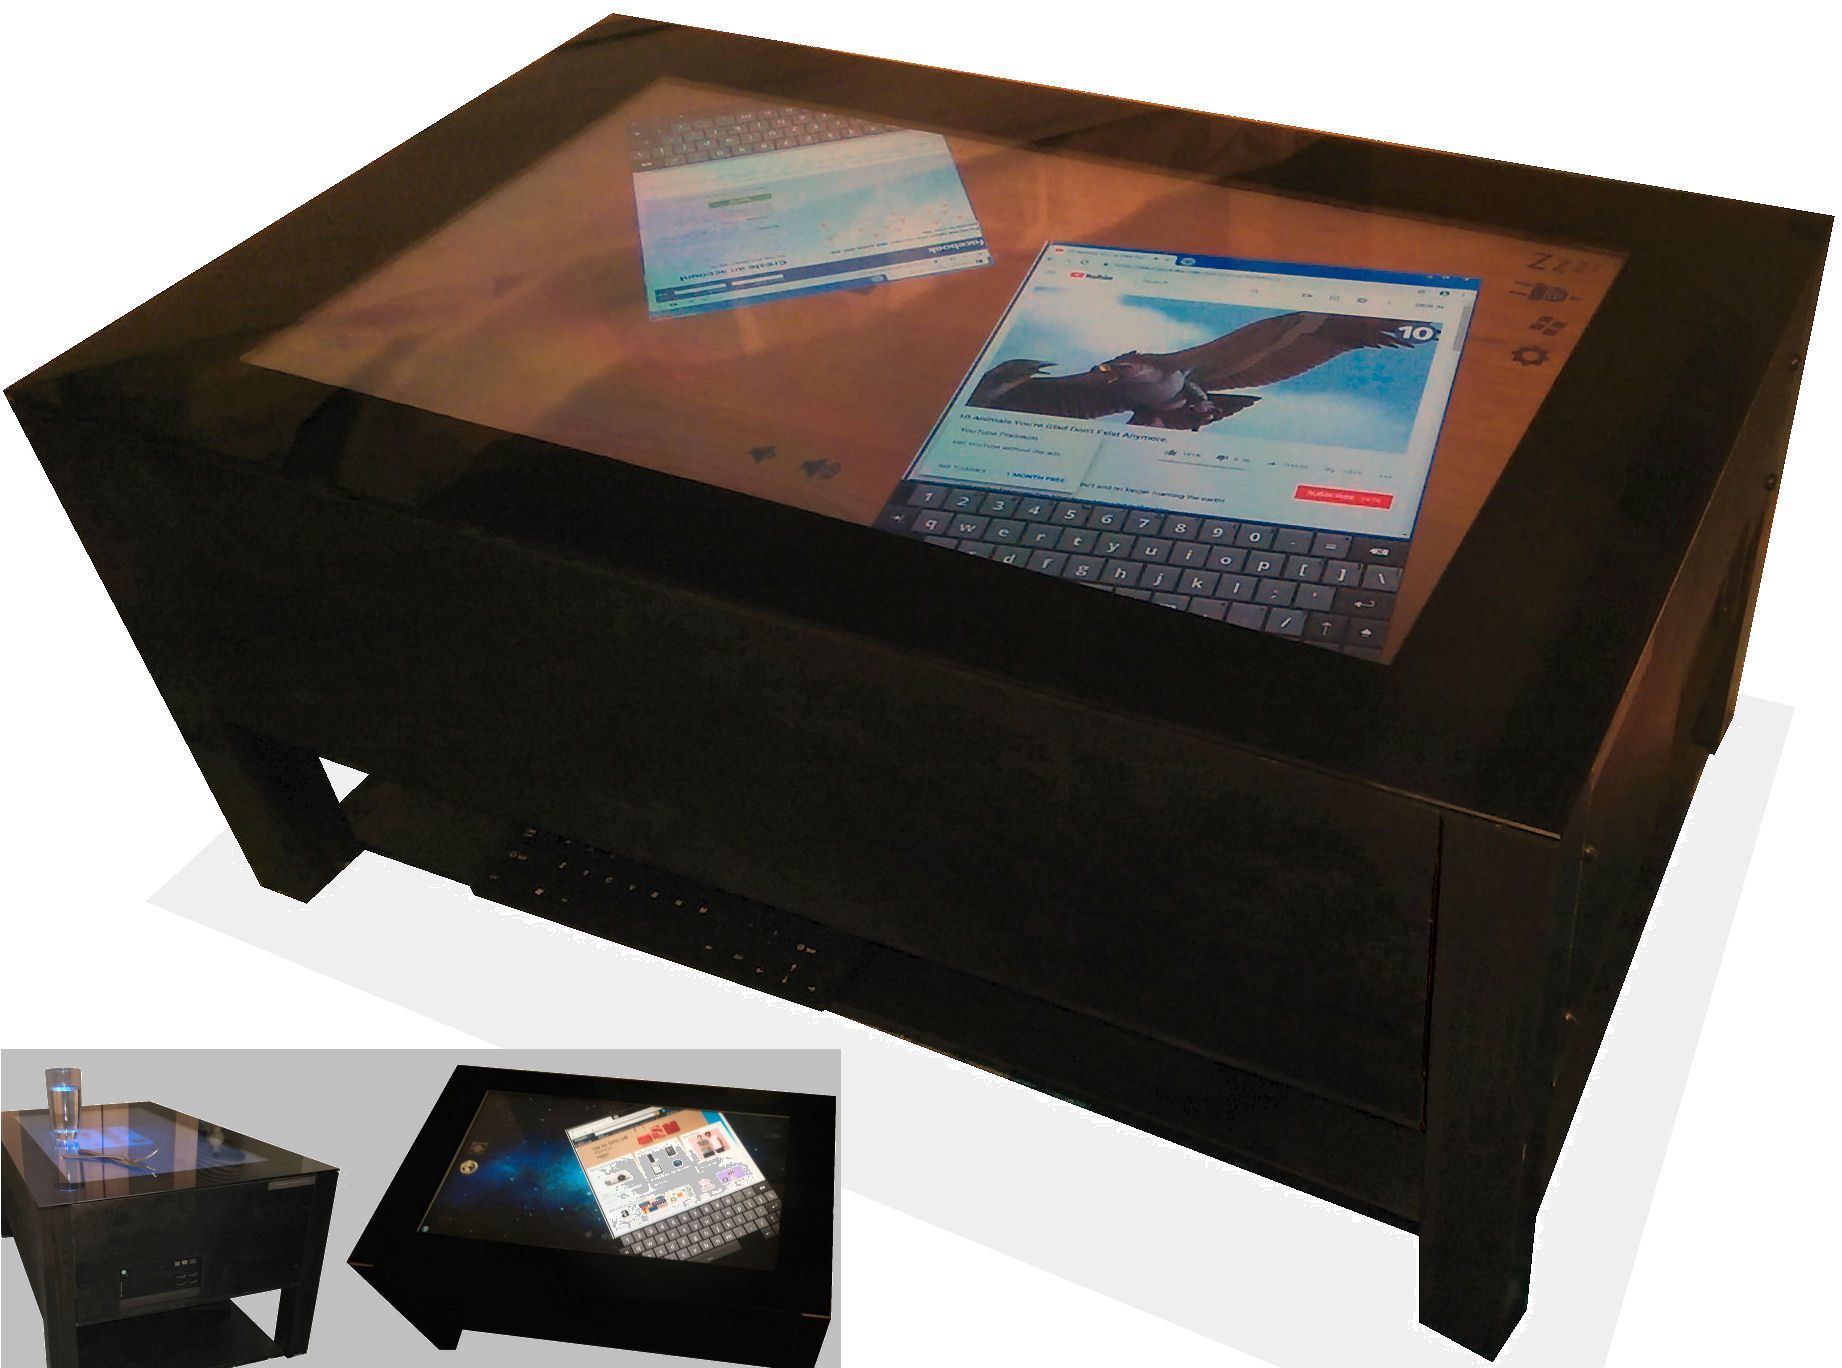 Jigate Touch Screen Coffee Tables with regard to size 1842 X 1368